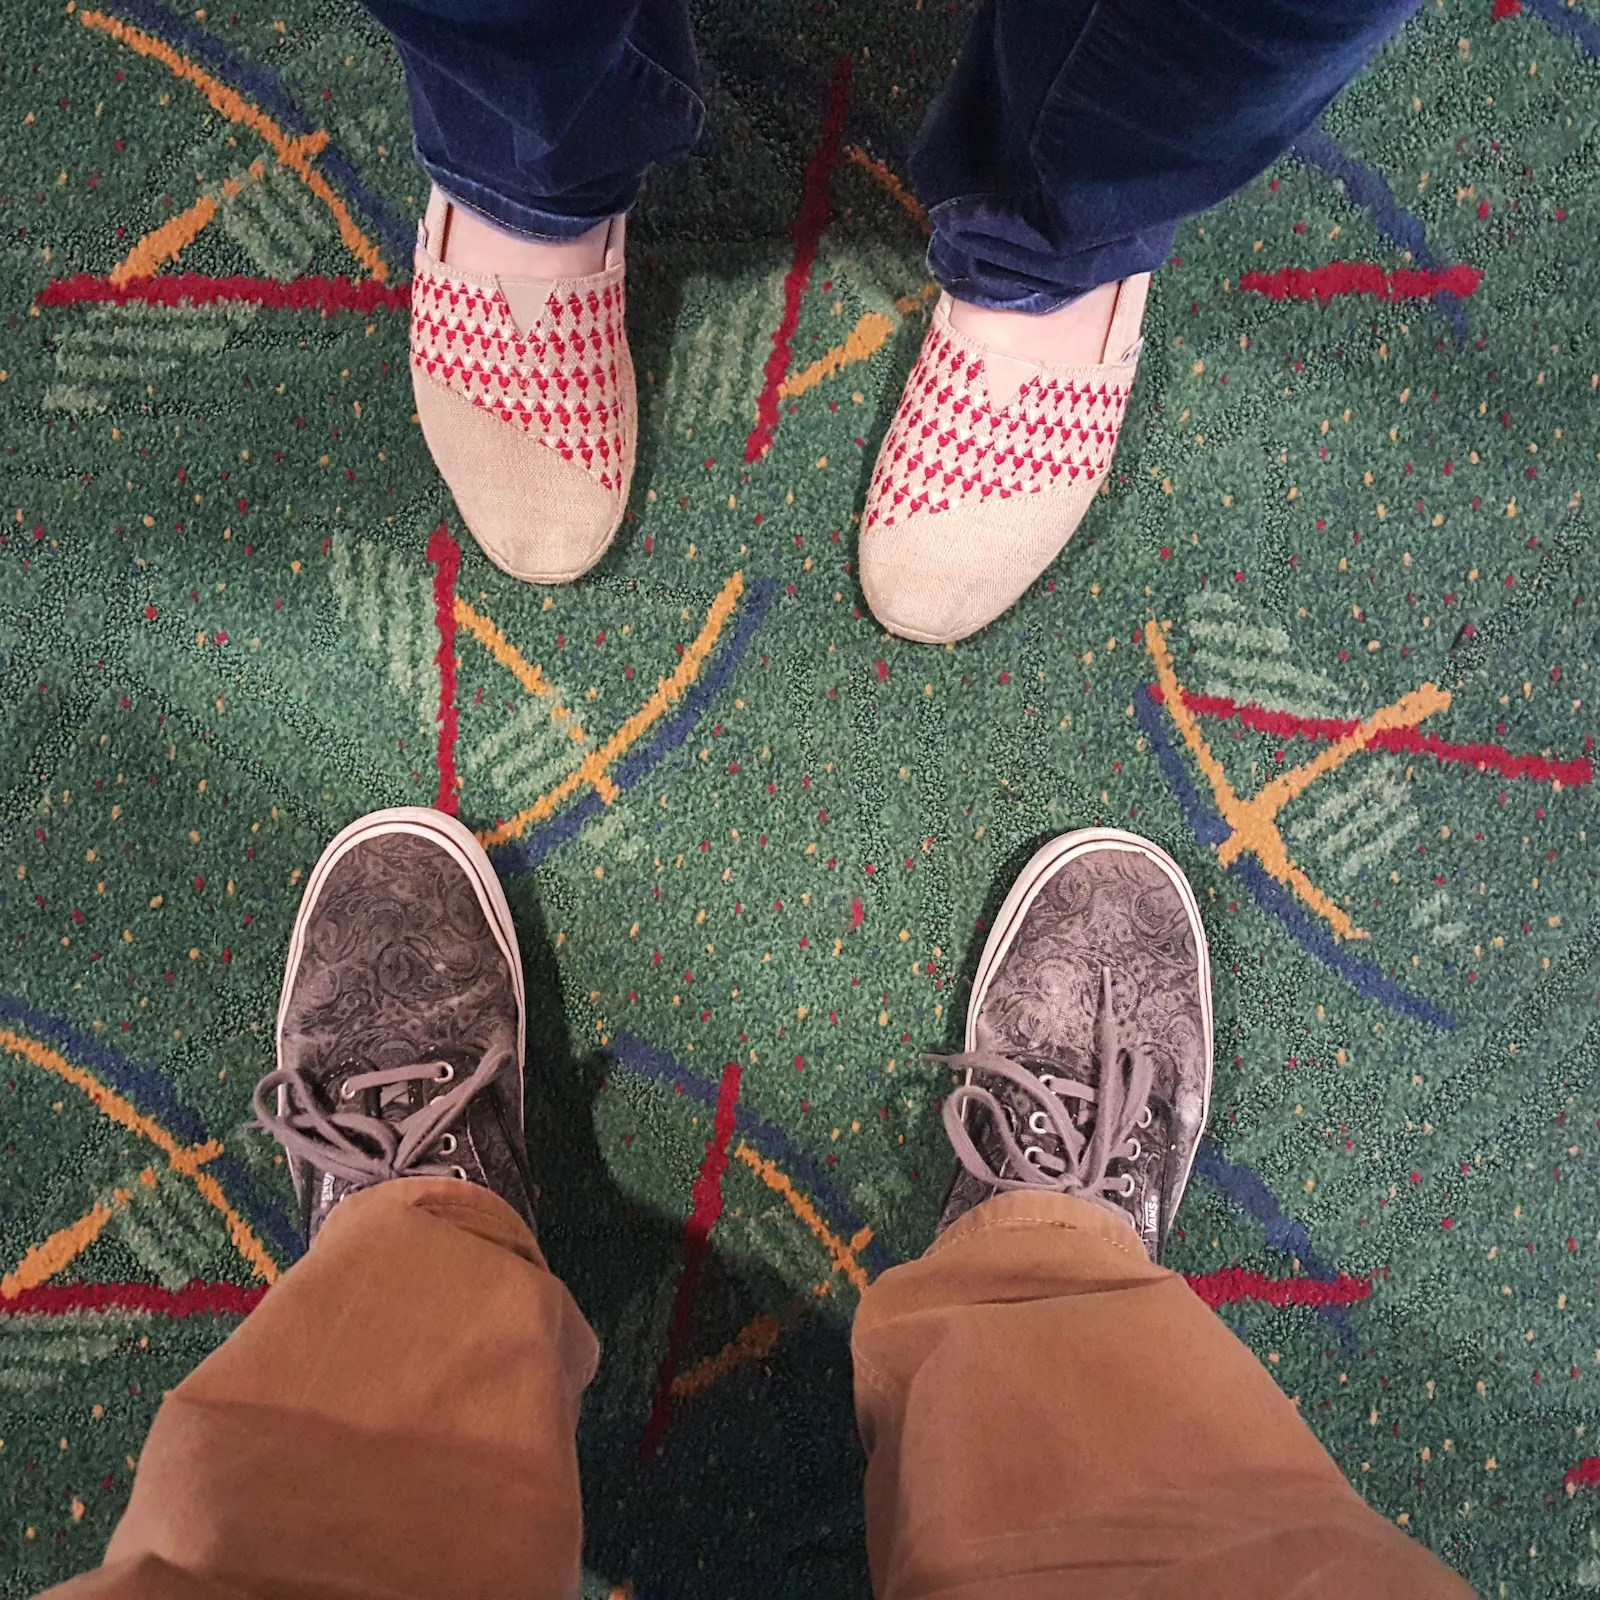 PDX carpet - toe to toe with my sweetheart